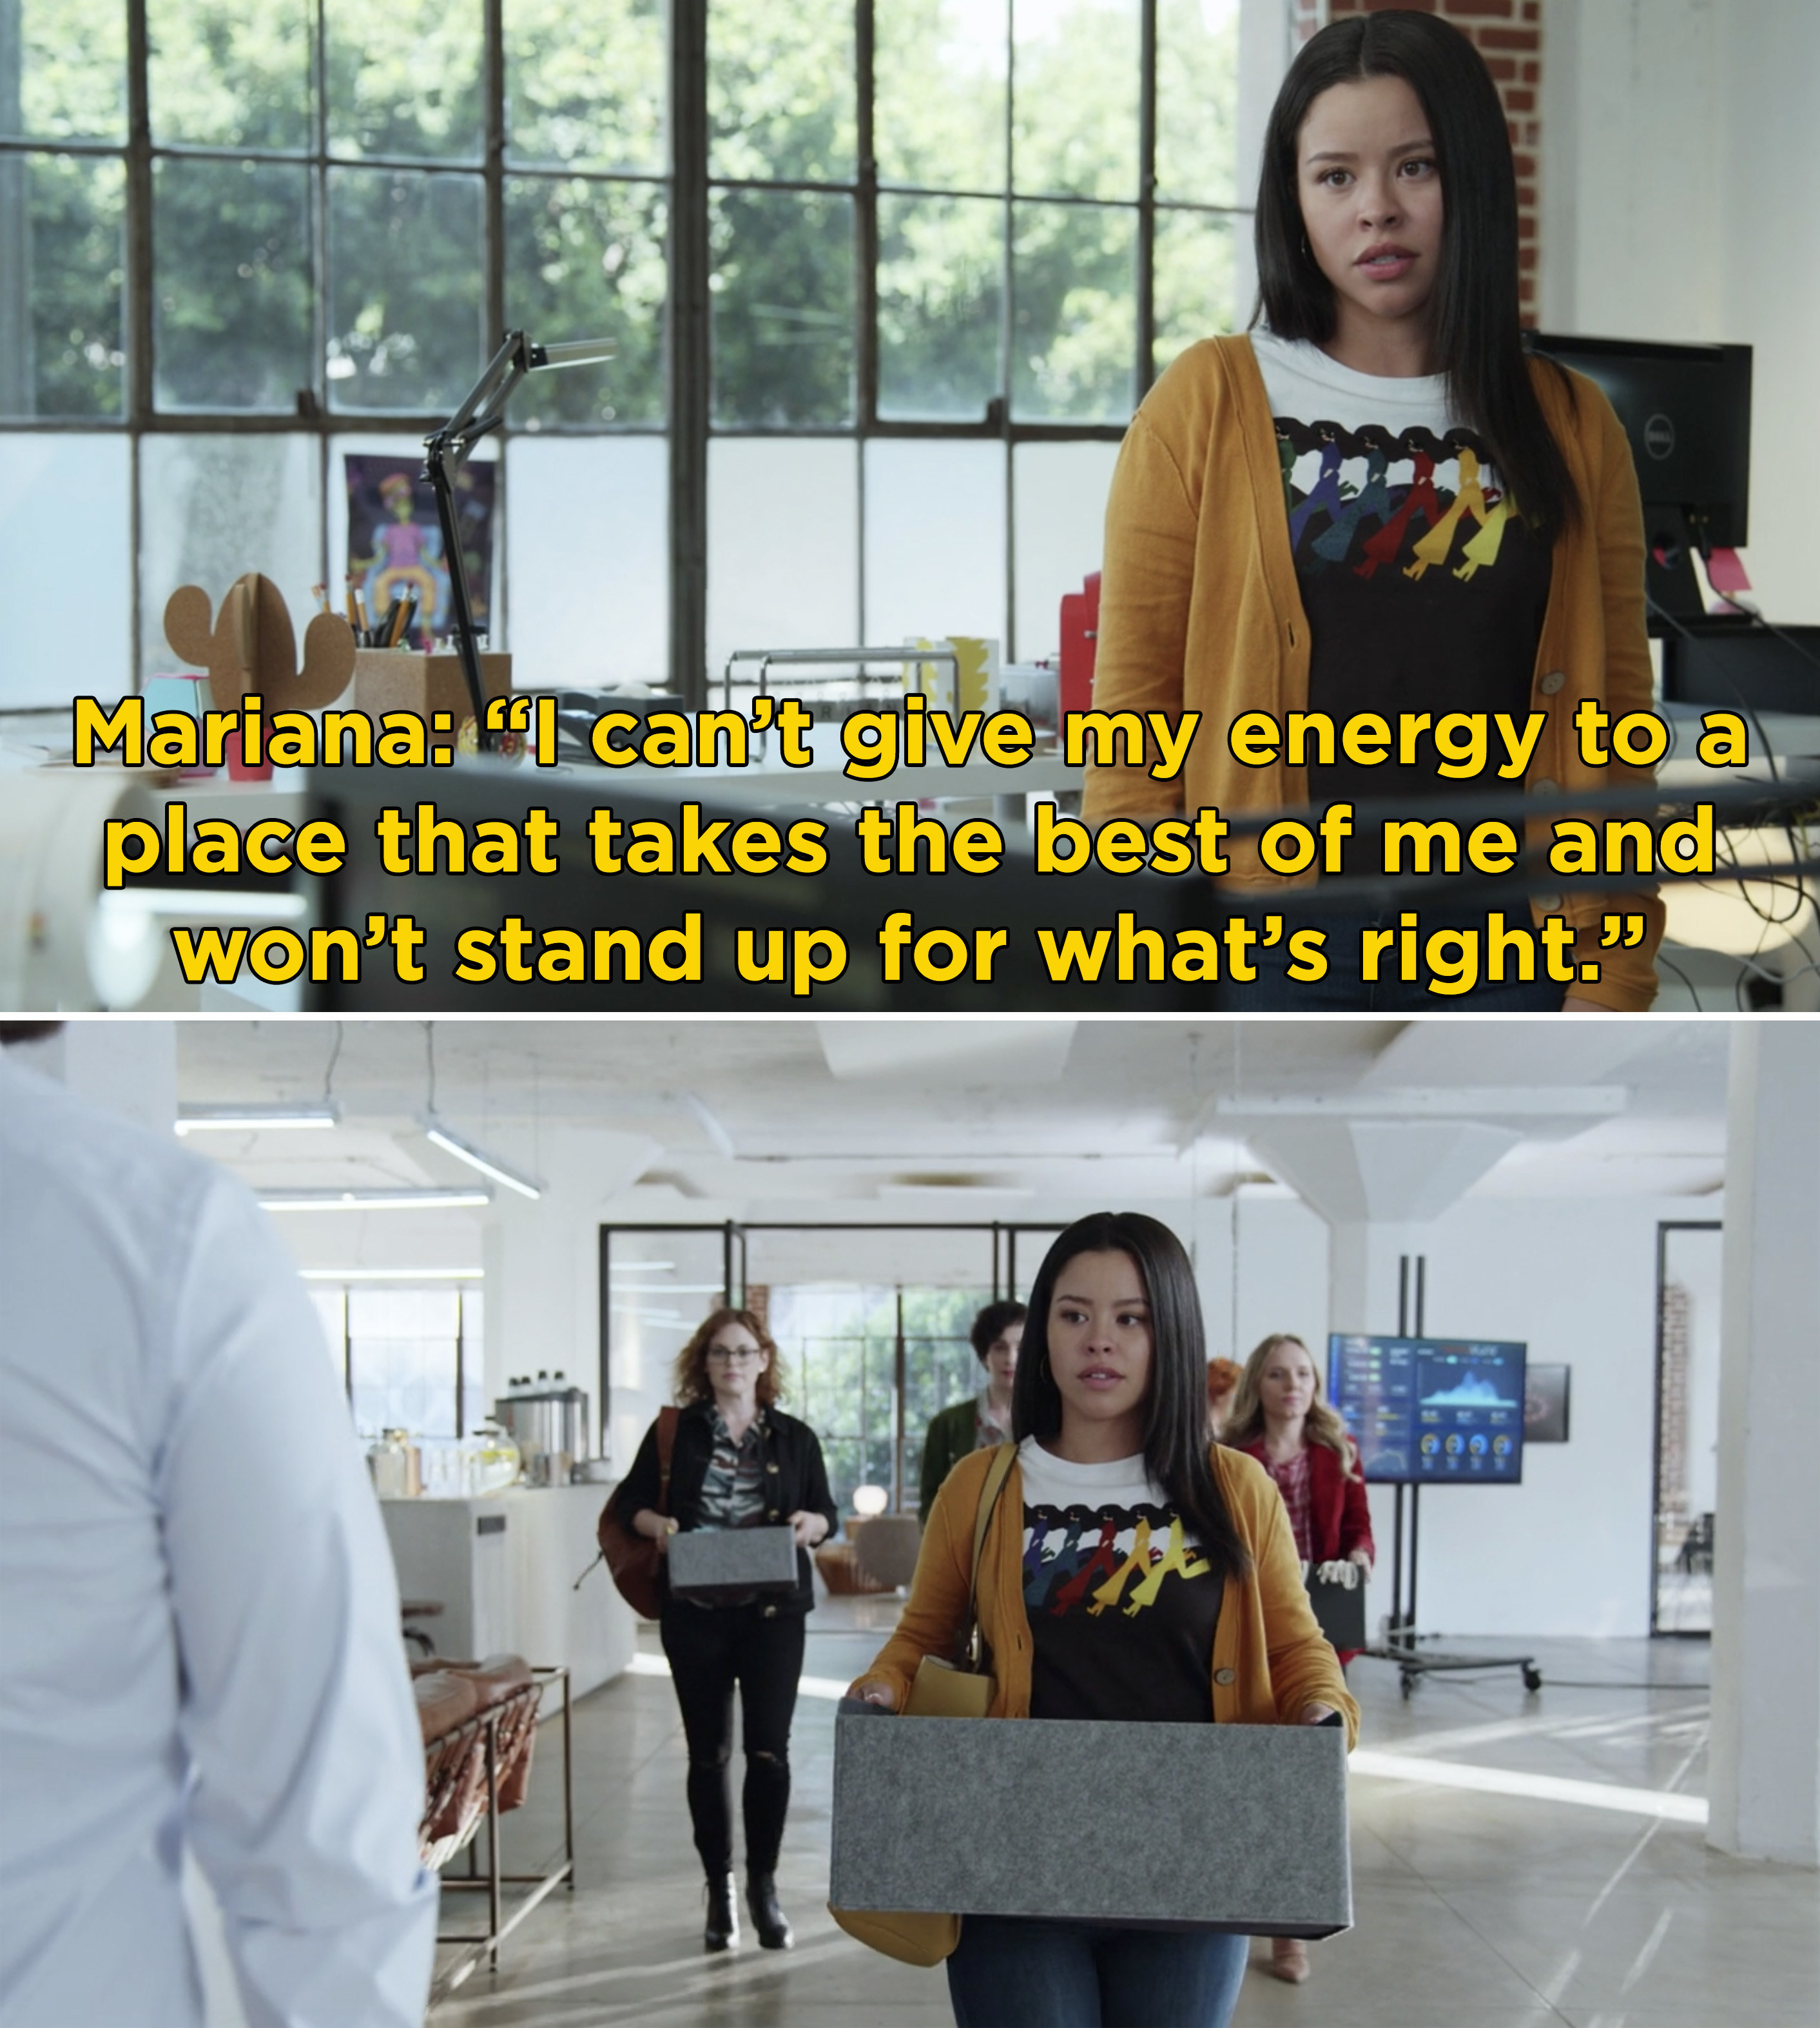 """Mariana saying, """"I can't give my energy to a place that takes the best of me and won't stand up for what's right"""""""